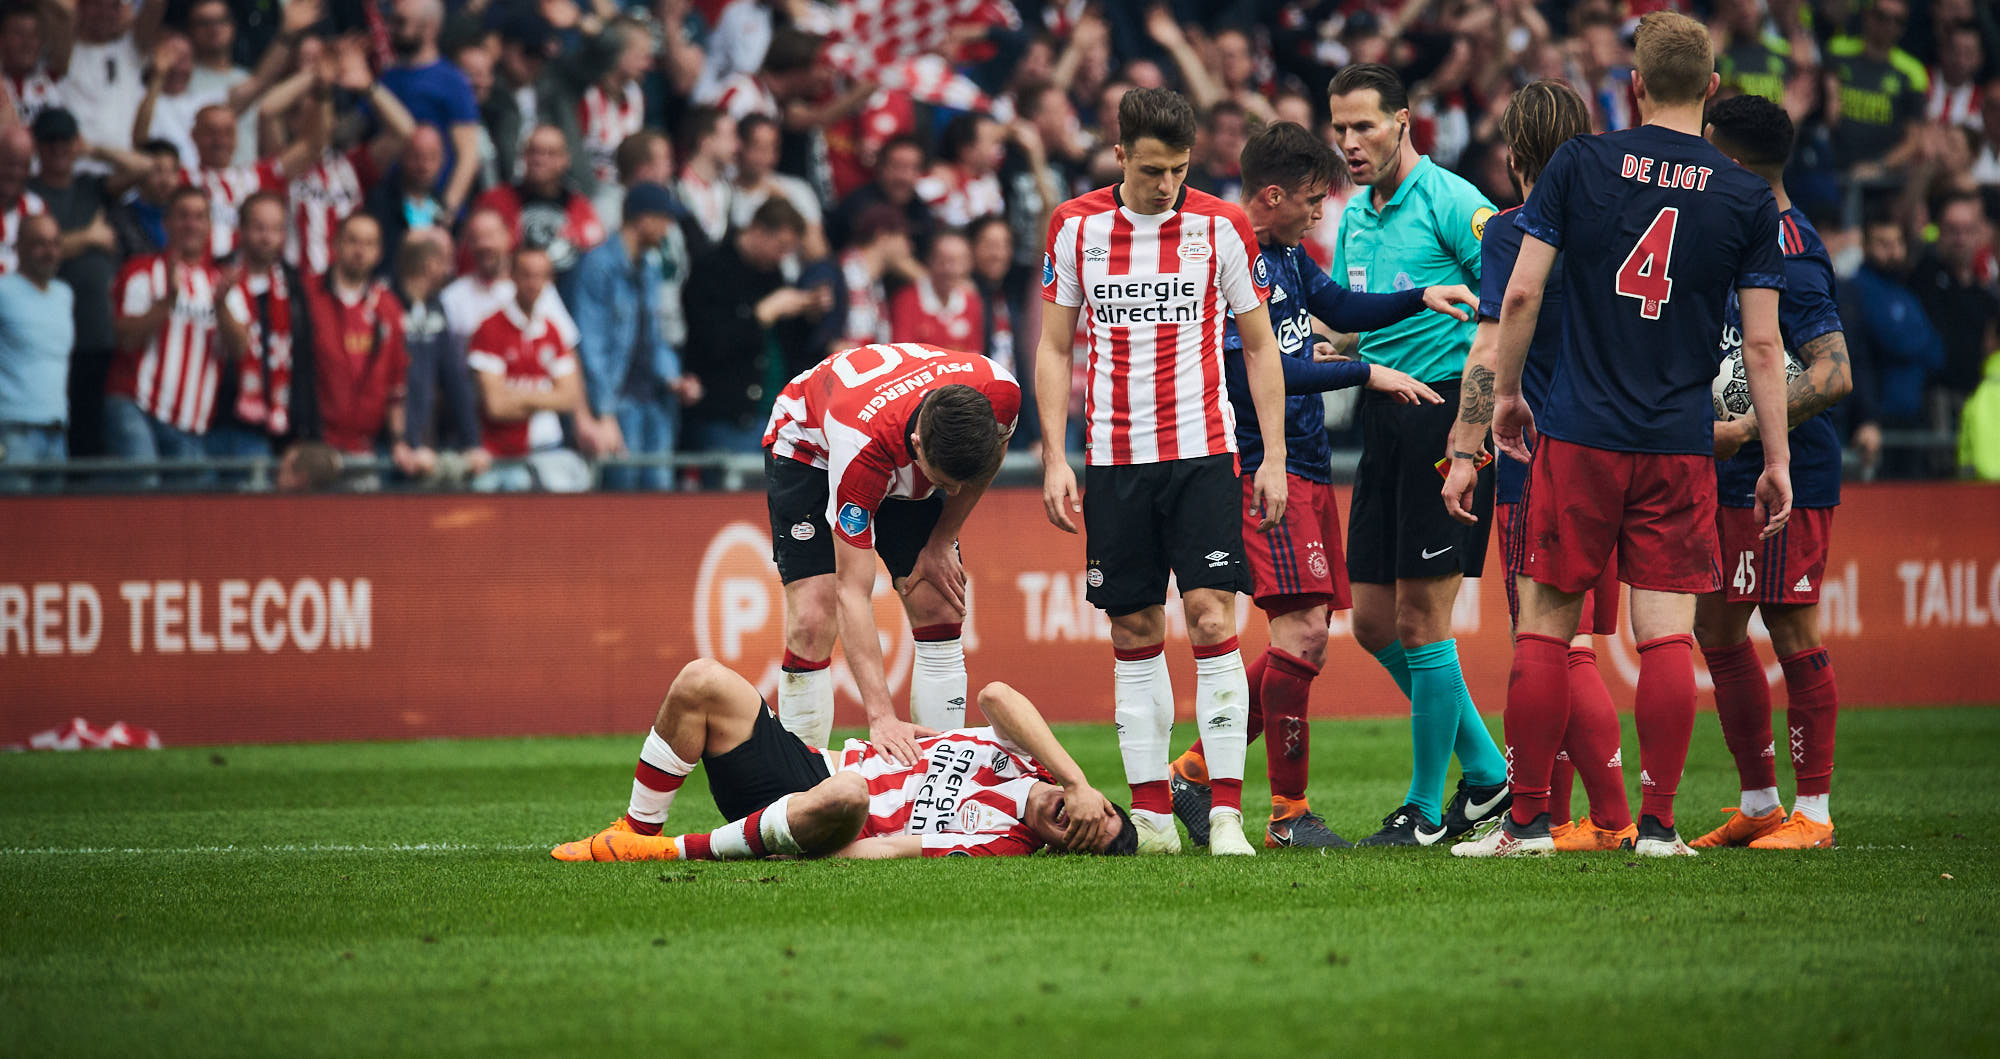 Hirving Lozano injured on the ground in the PSV Eindhoven Philips Stadium